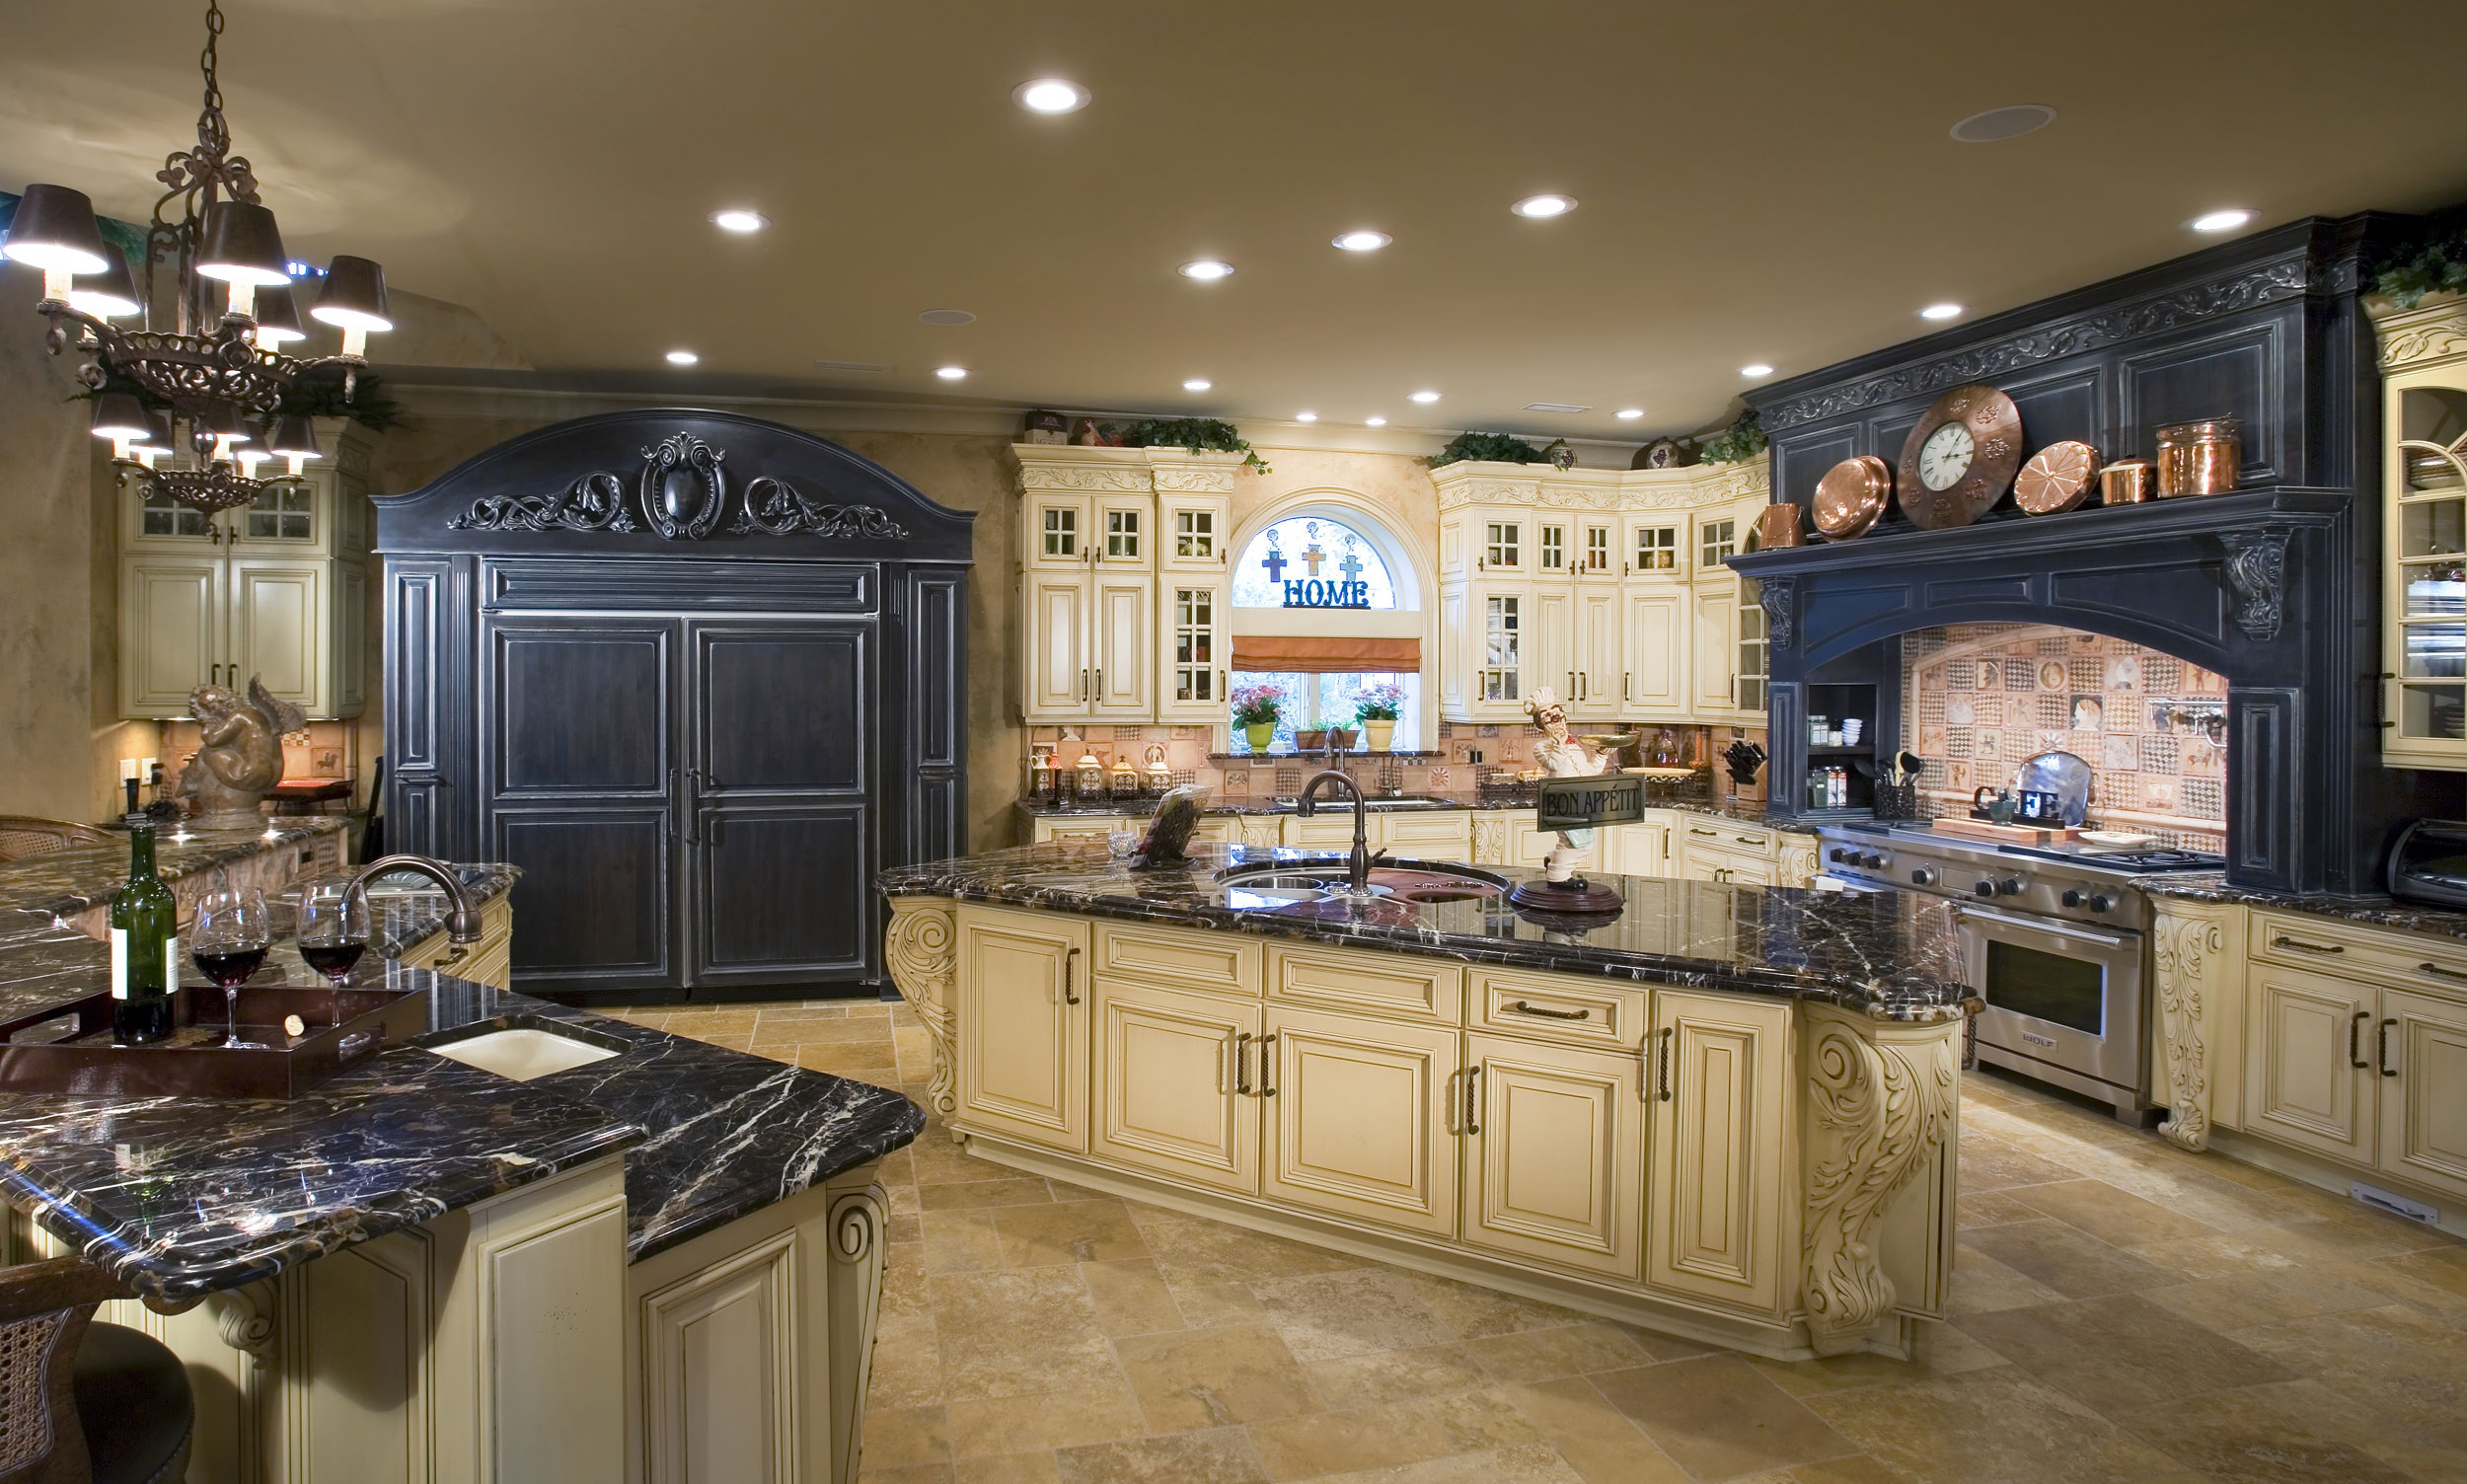 5 Things Every Kitchen Design Needs To Appeal The Home